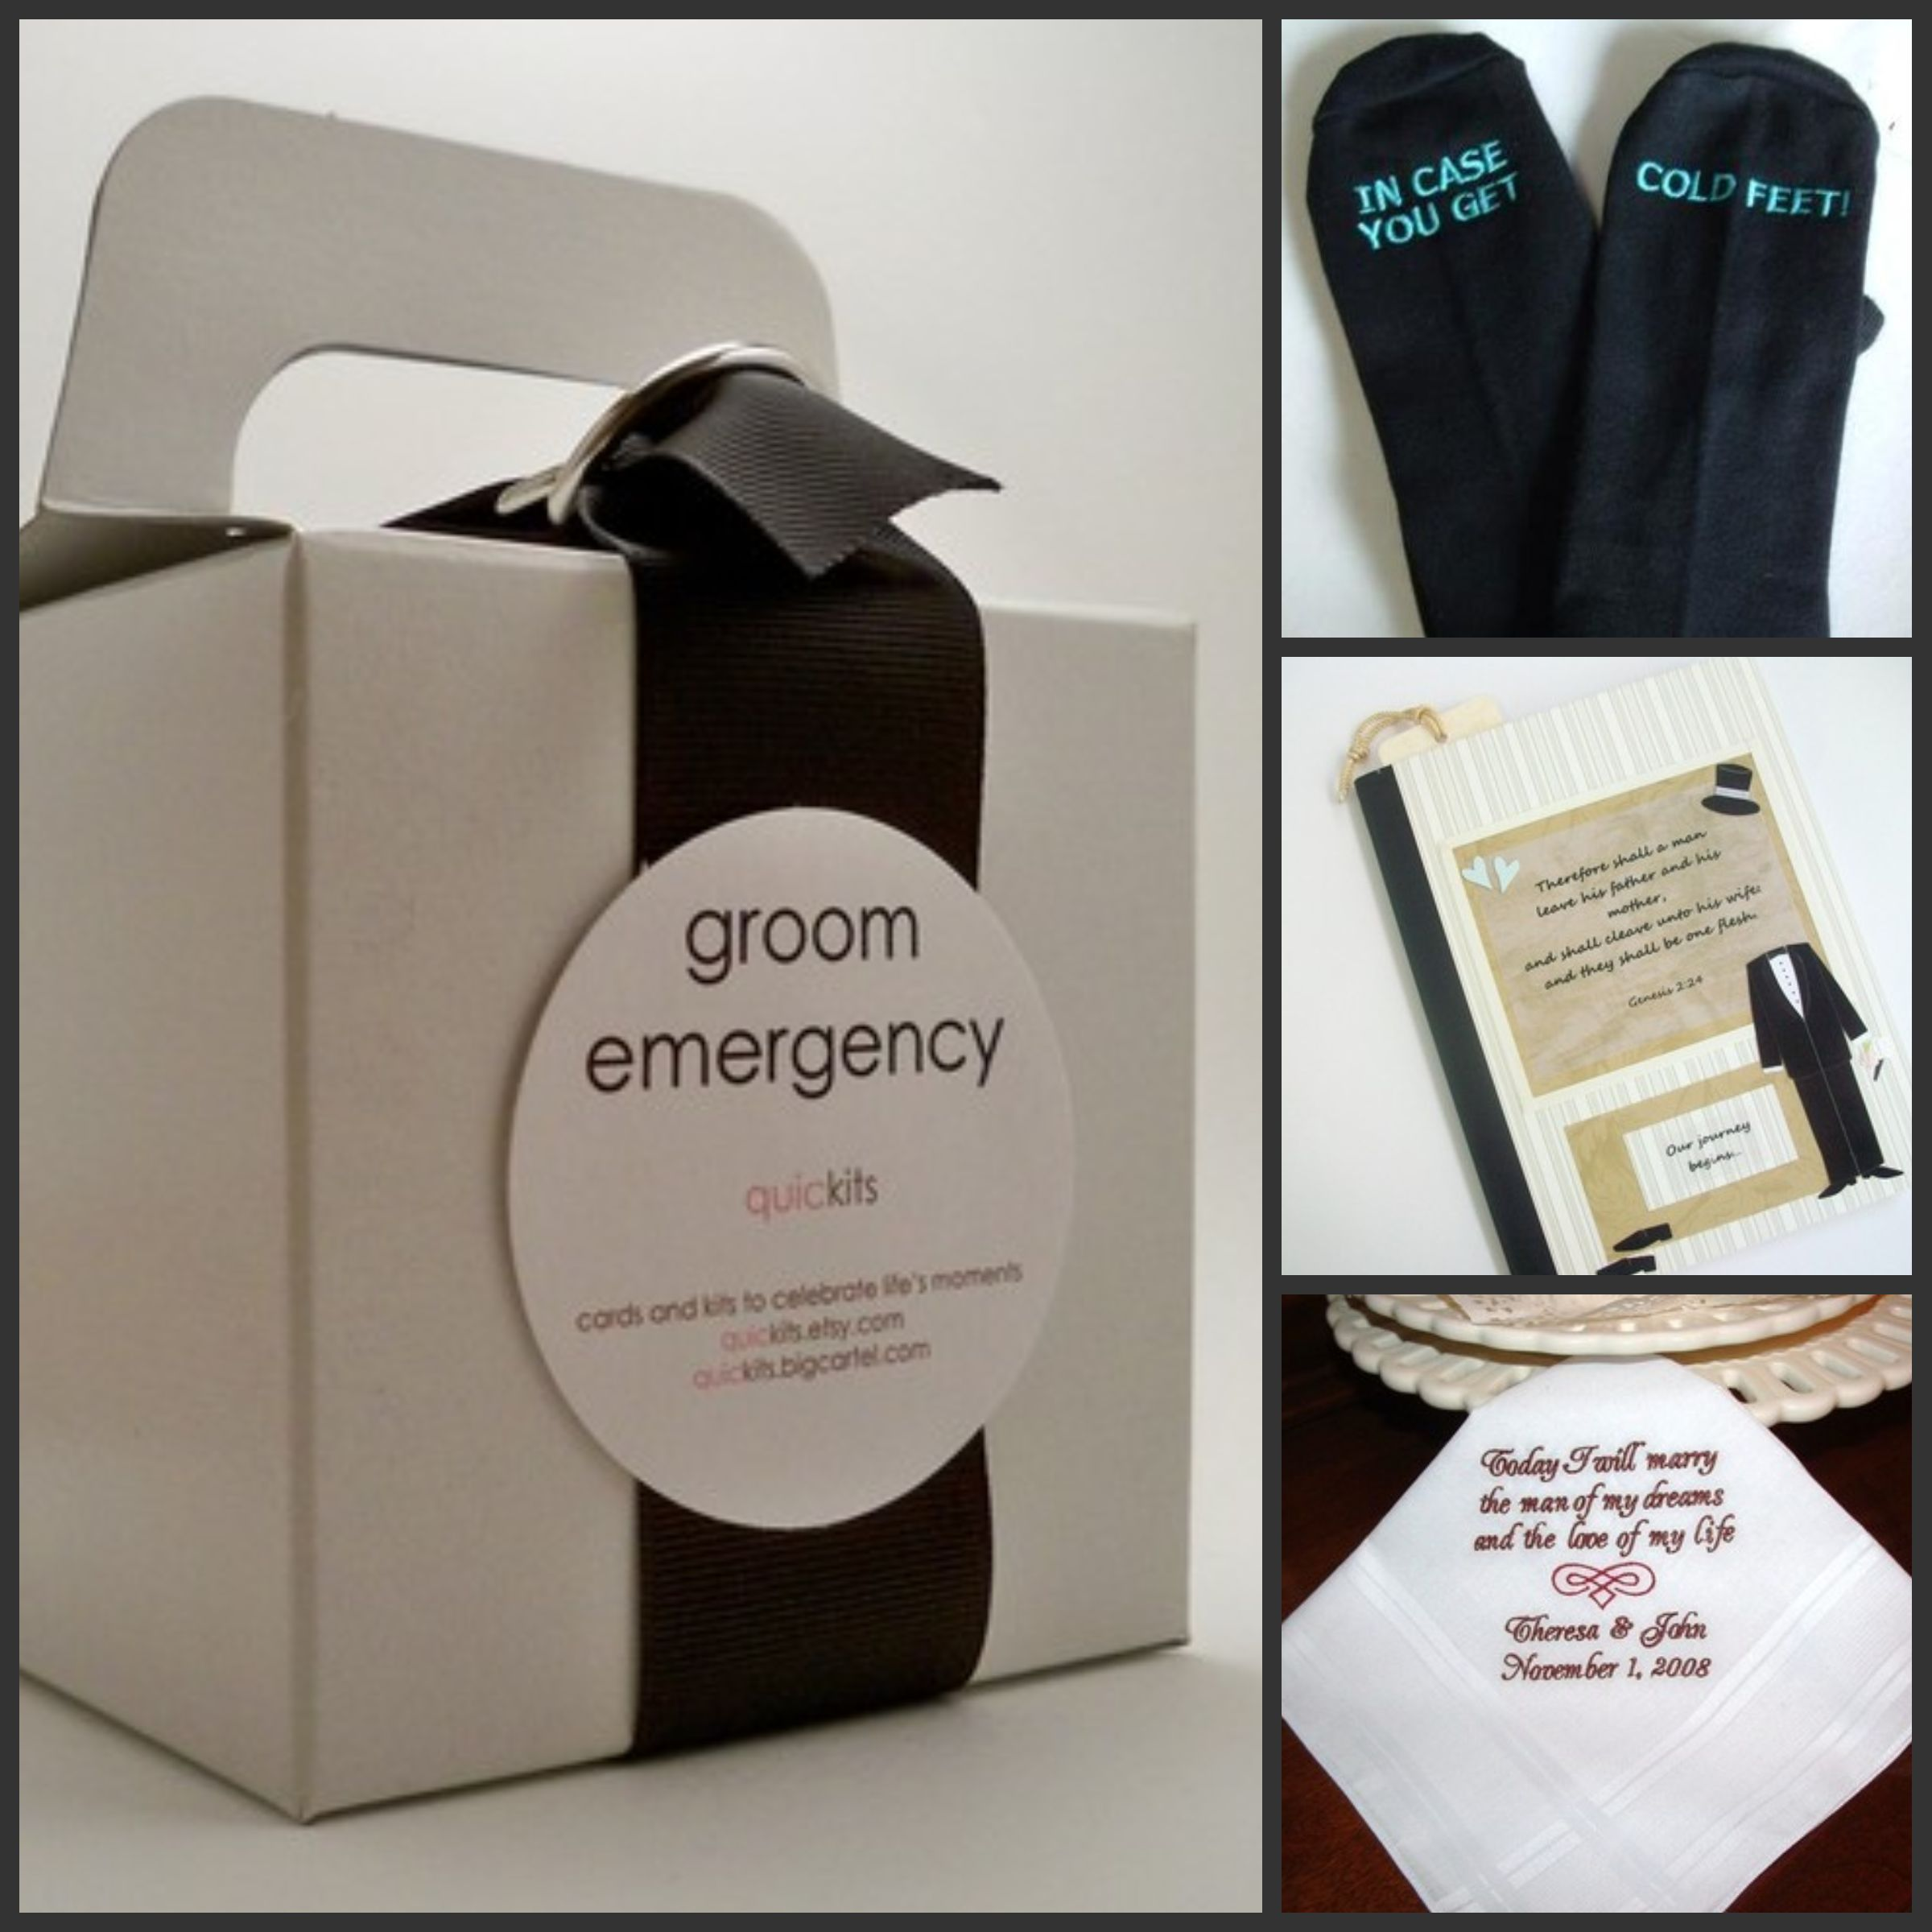 Ideas For Wedding Gift From Groom To Bride : personal gifts for your groom clockwise from left groom emergency kit ...